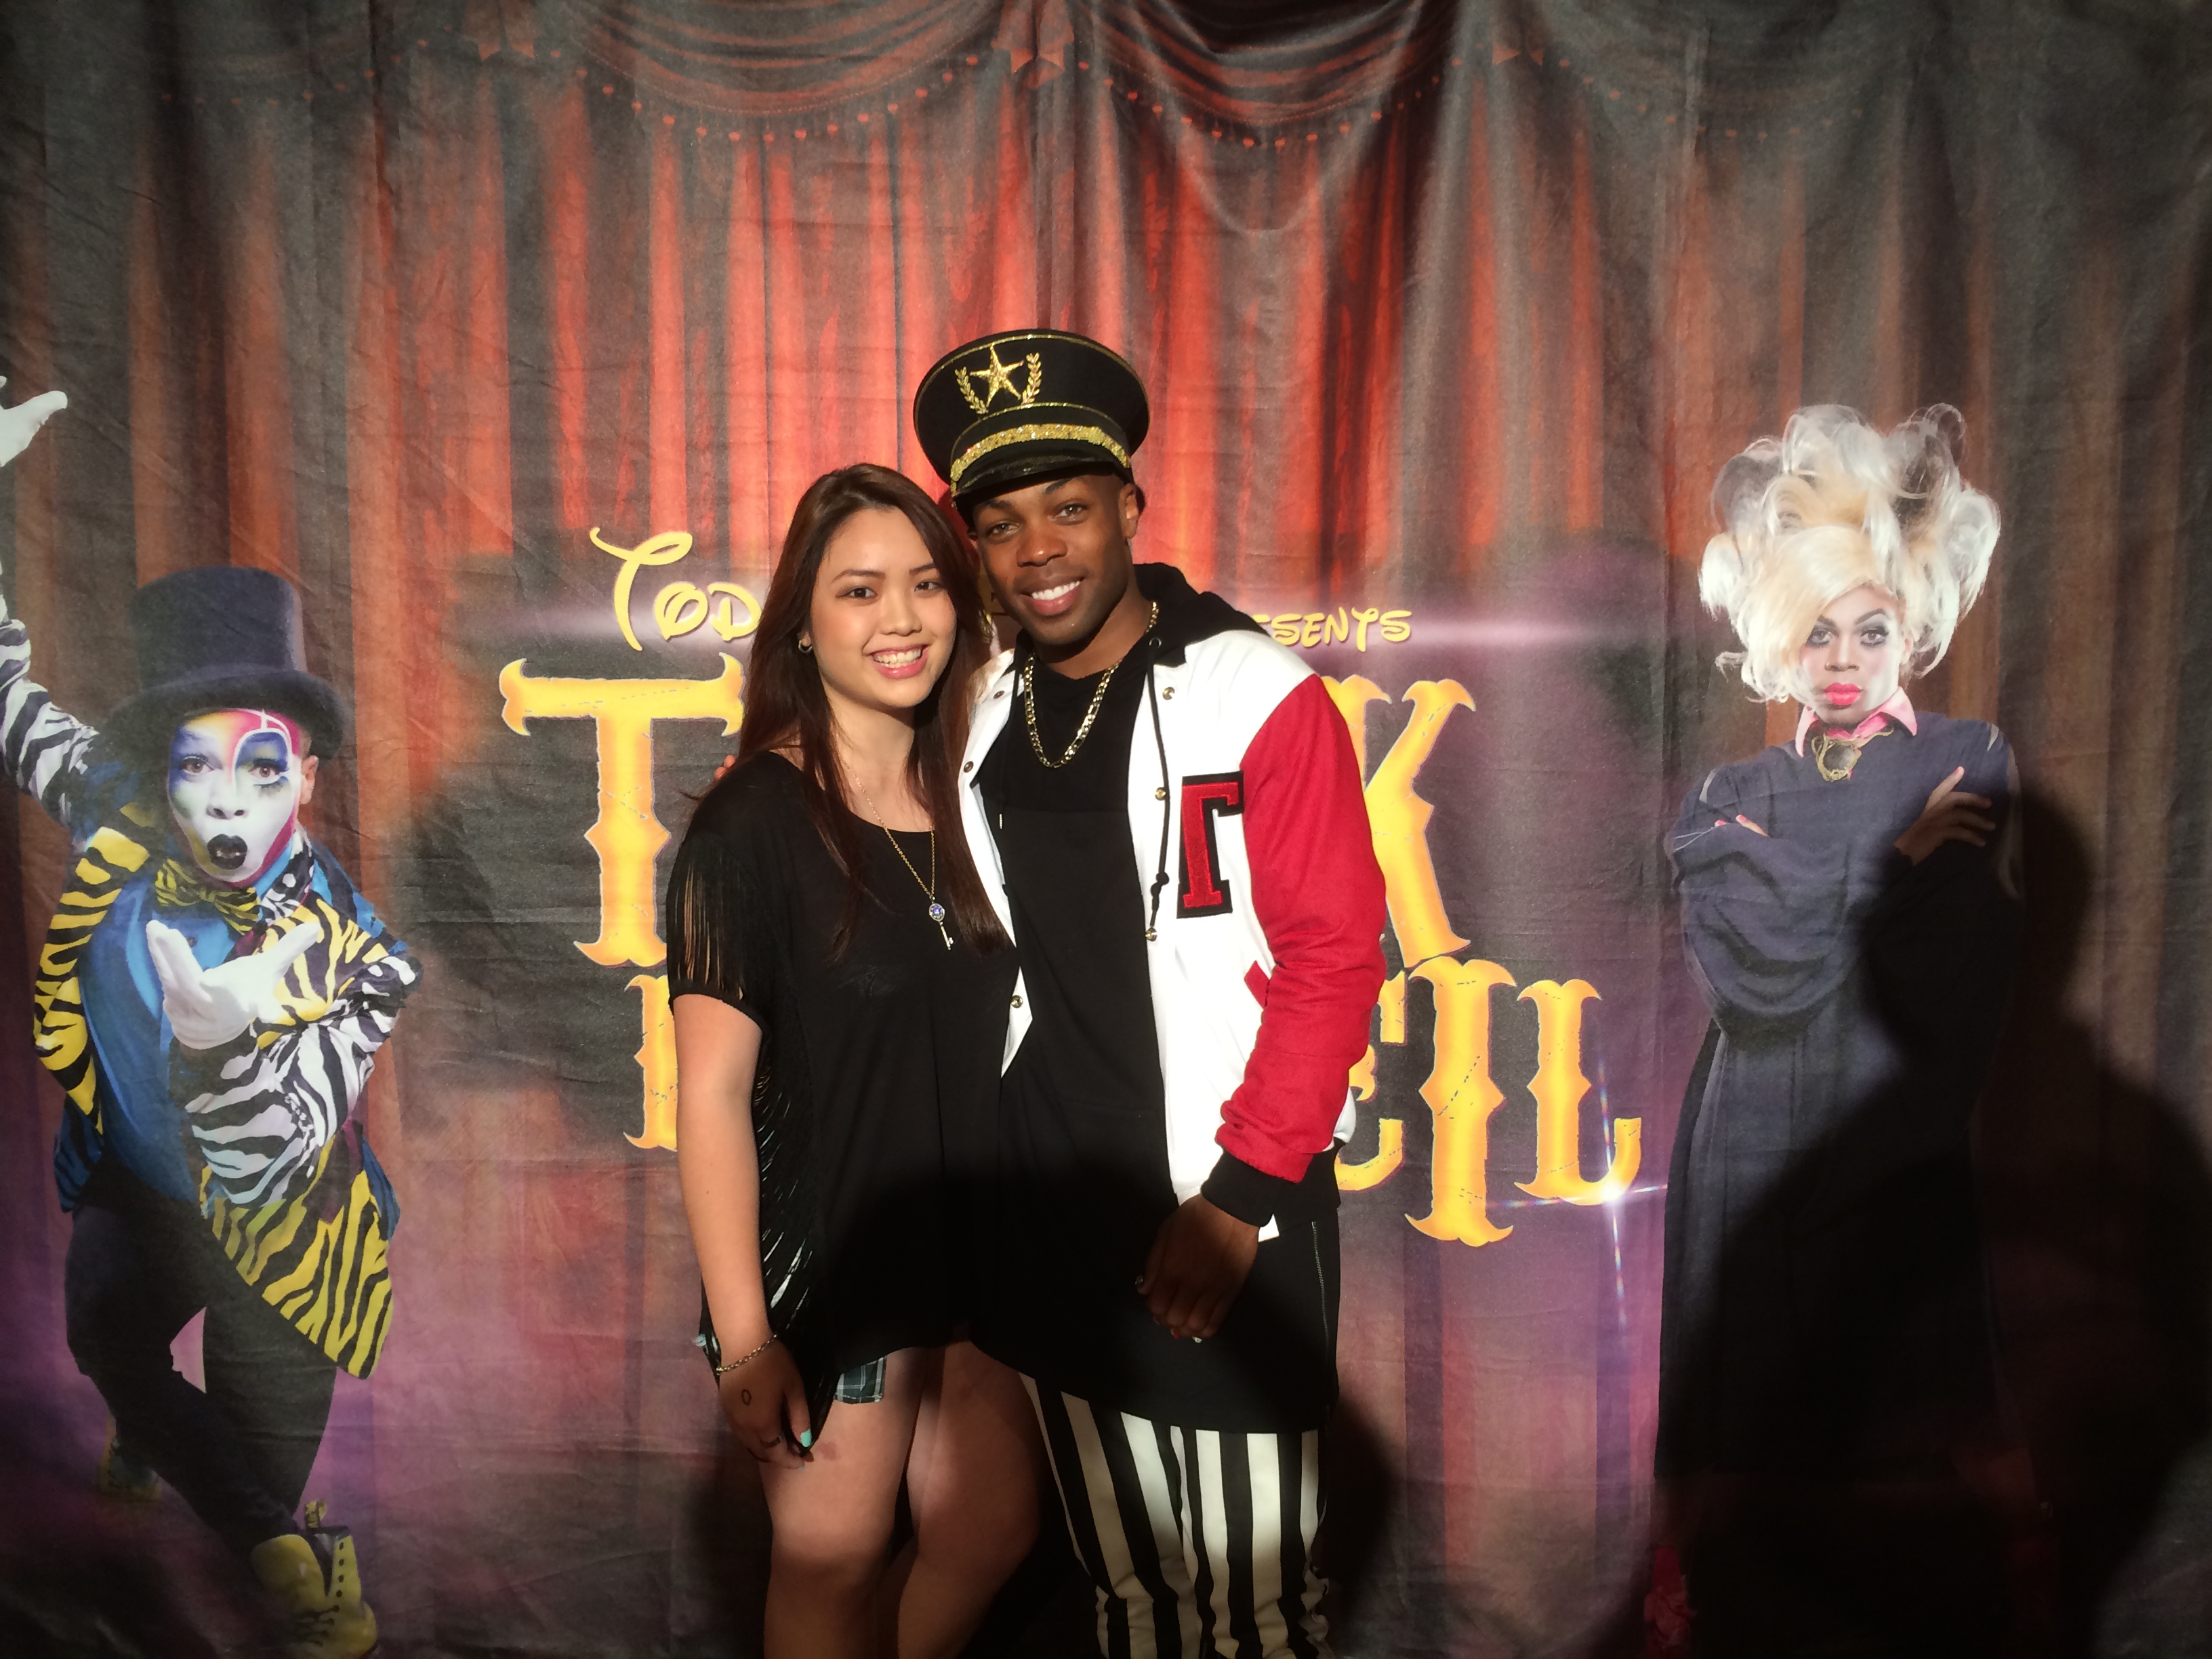 Ti exclusive todrick hall and im5 perform at the el portal theatre ti exclusive todrick hall and im5 perform at the el portal theatre m4hsunfo